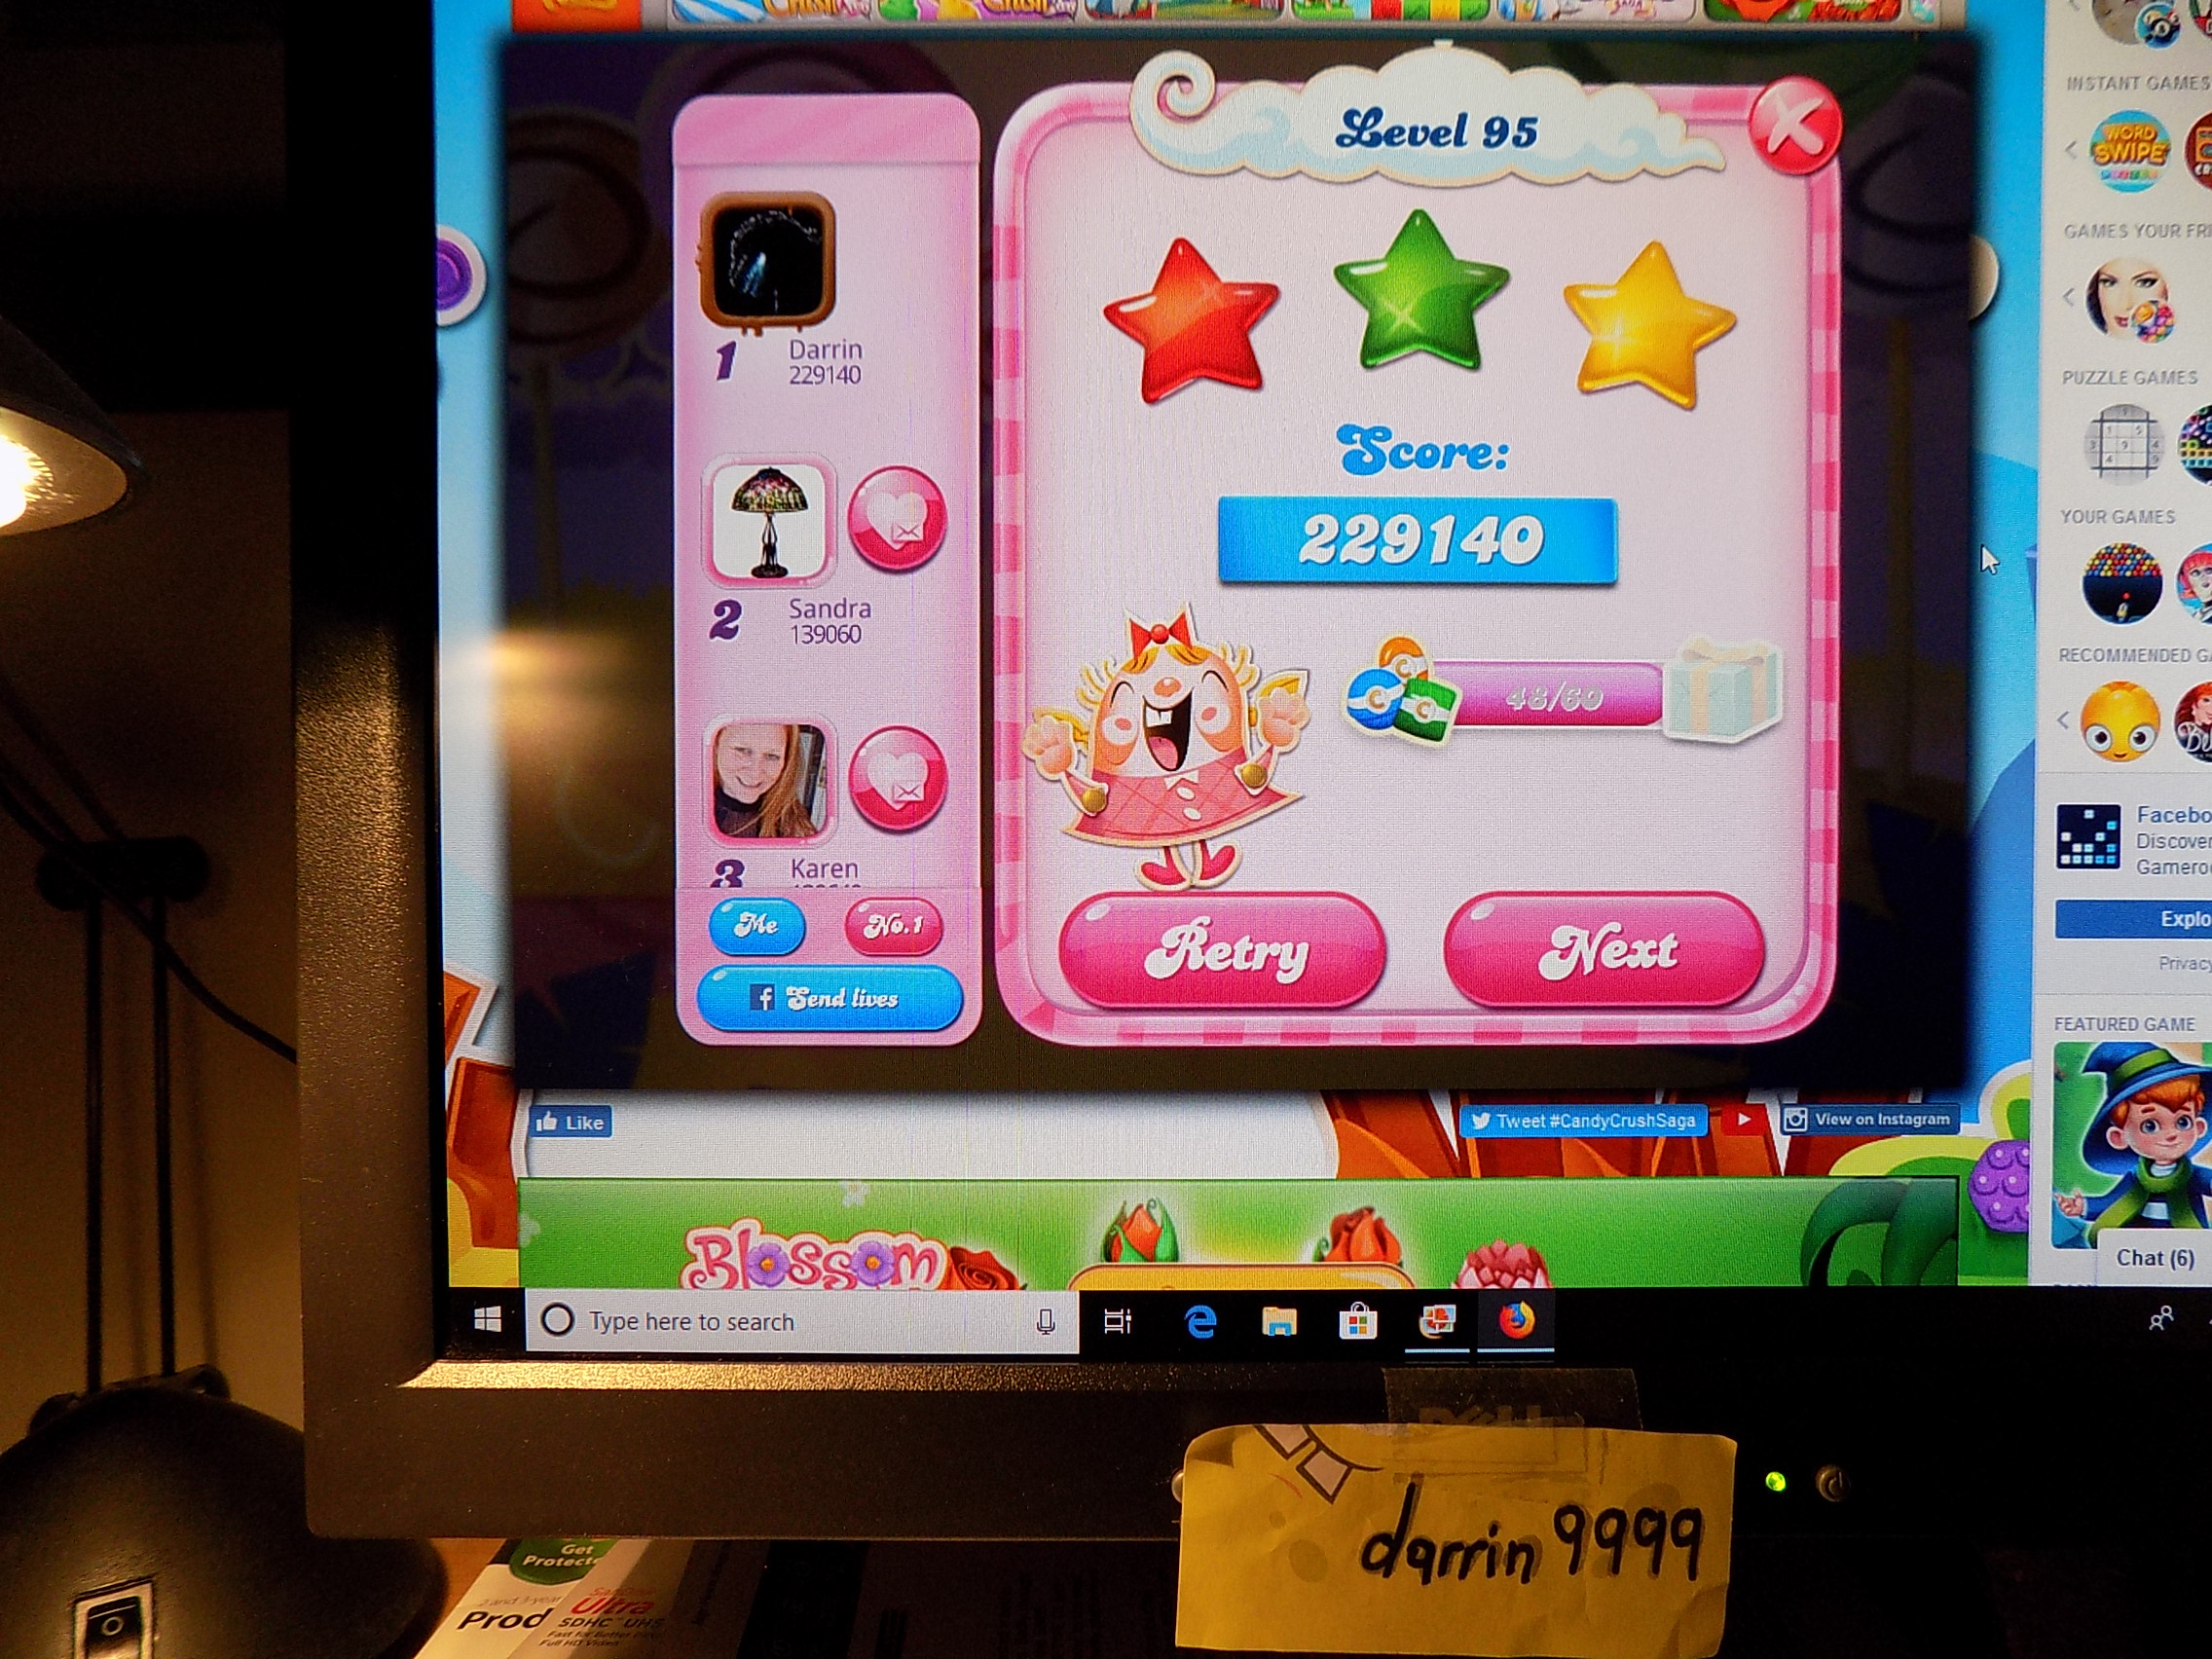 Candy Crush Saga: Level 095 229,140 points